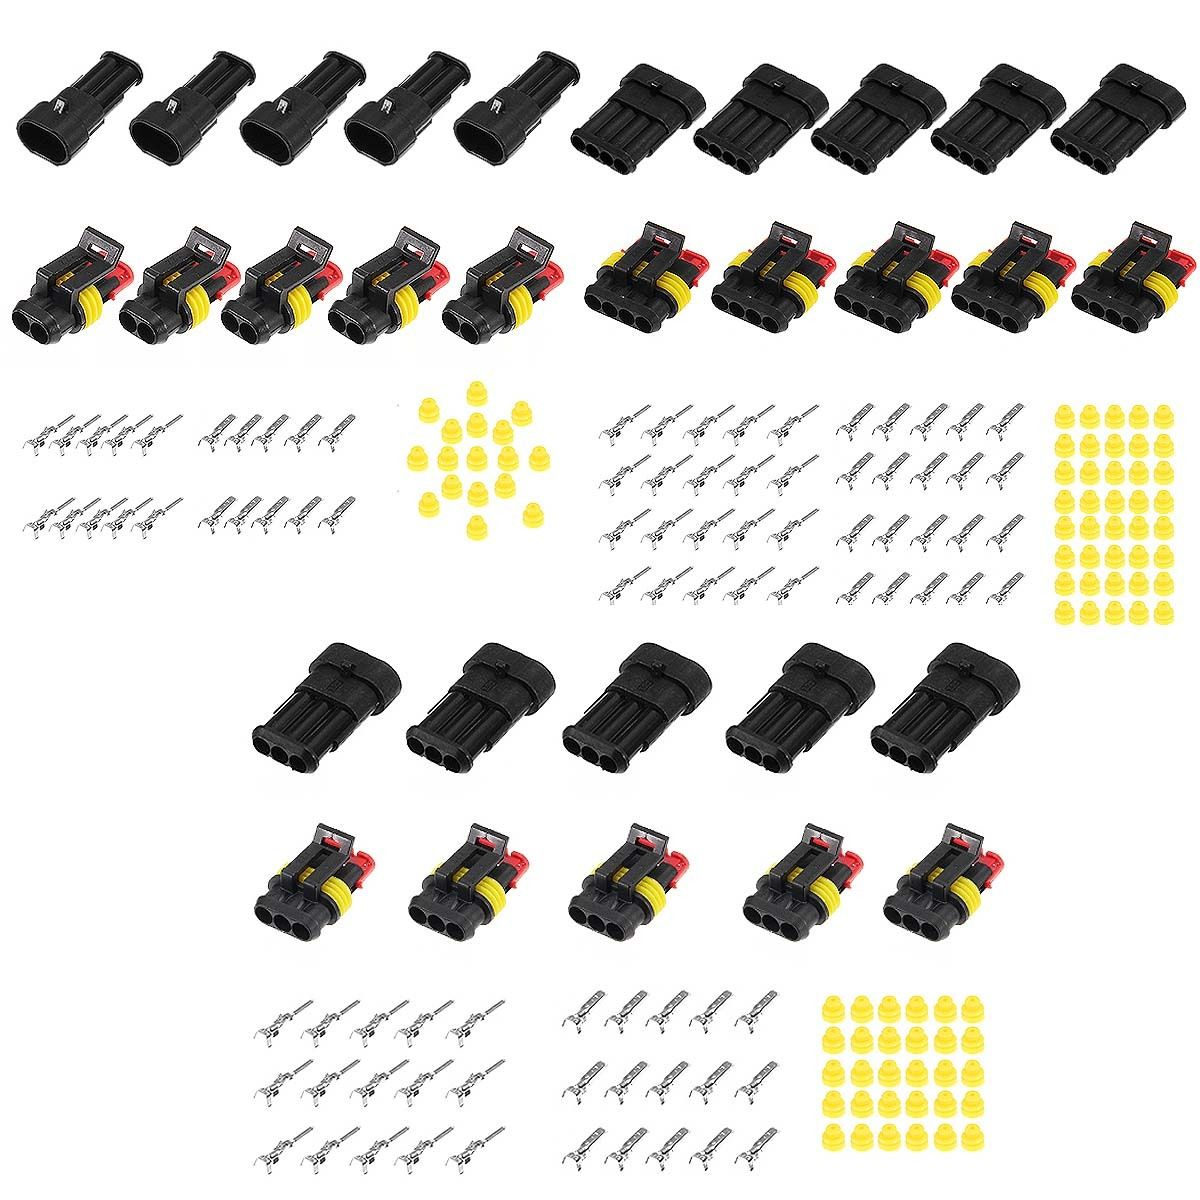 15 Sets Waterproof Electrical Wire Connector 2 3 4 Pins Way Mototcycle Car Auto Sealed Plug IP68